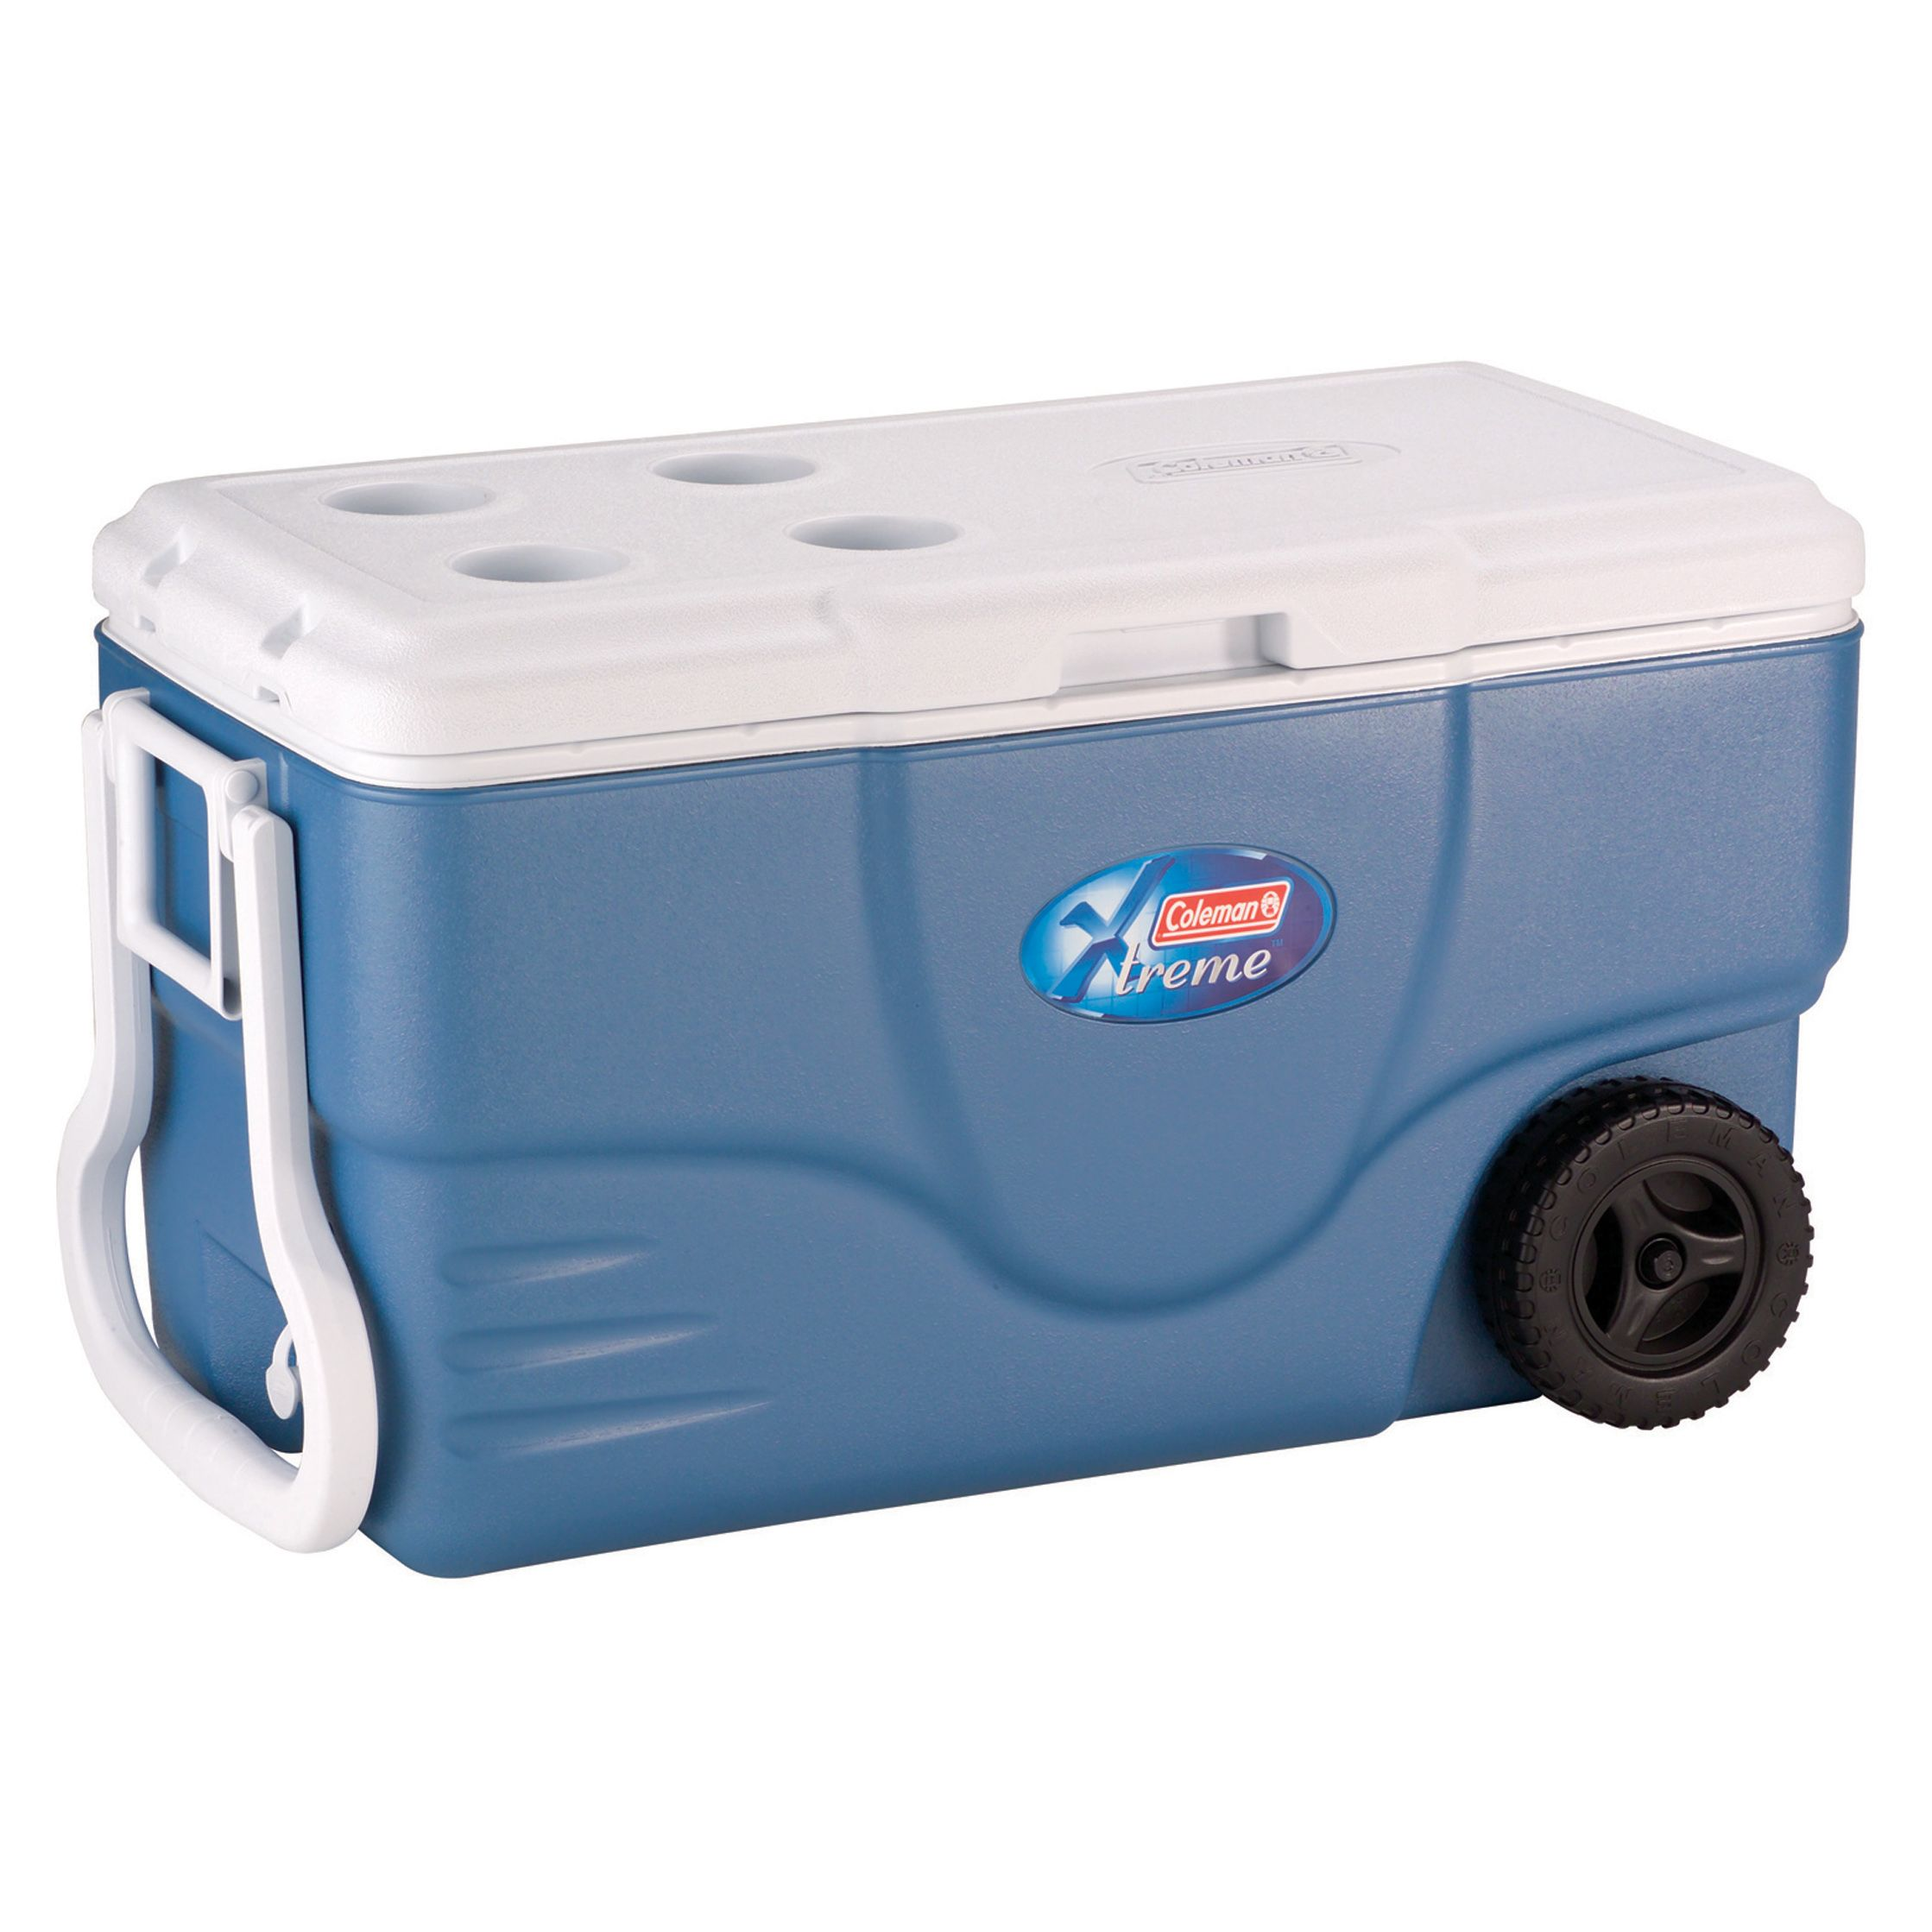 Bunnings Kitchen Price List Coleman 6262a748 62 Quart Xtreme Wheeled Cooler